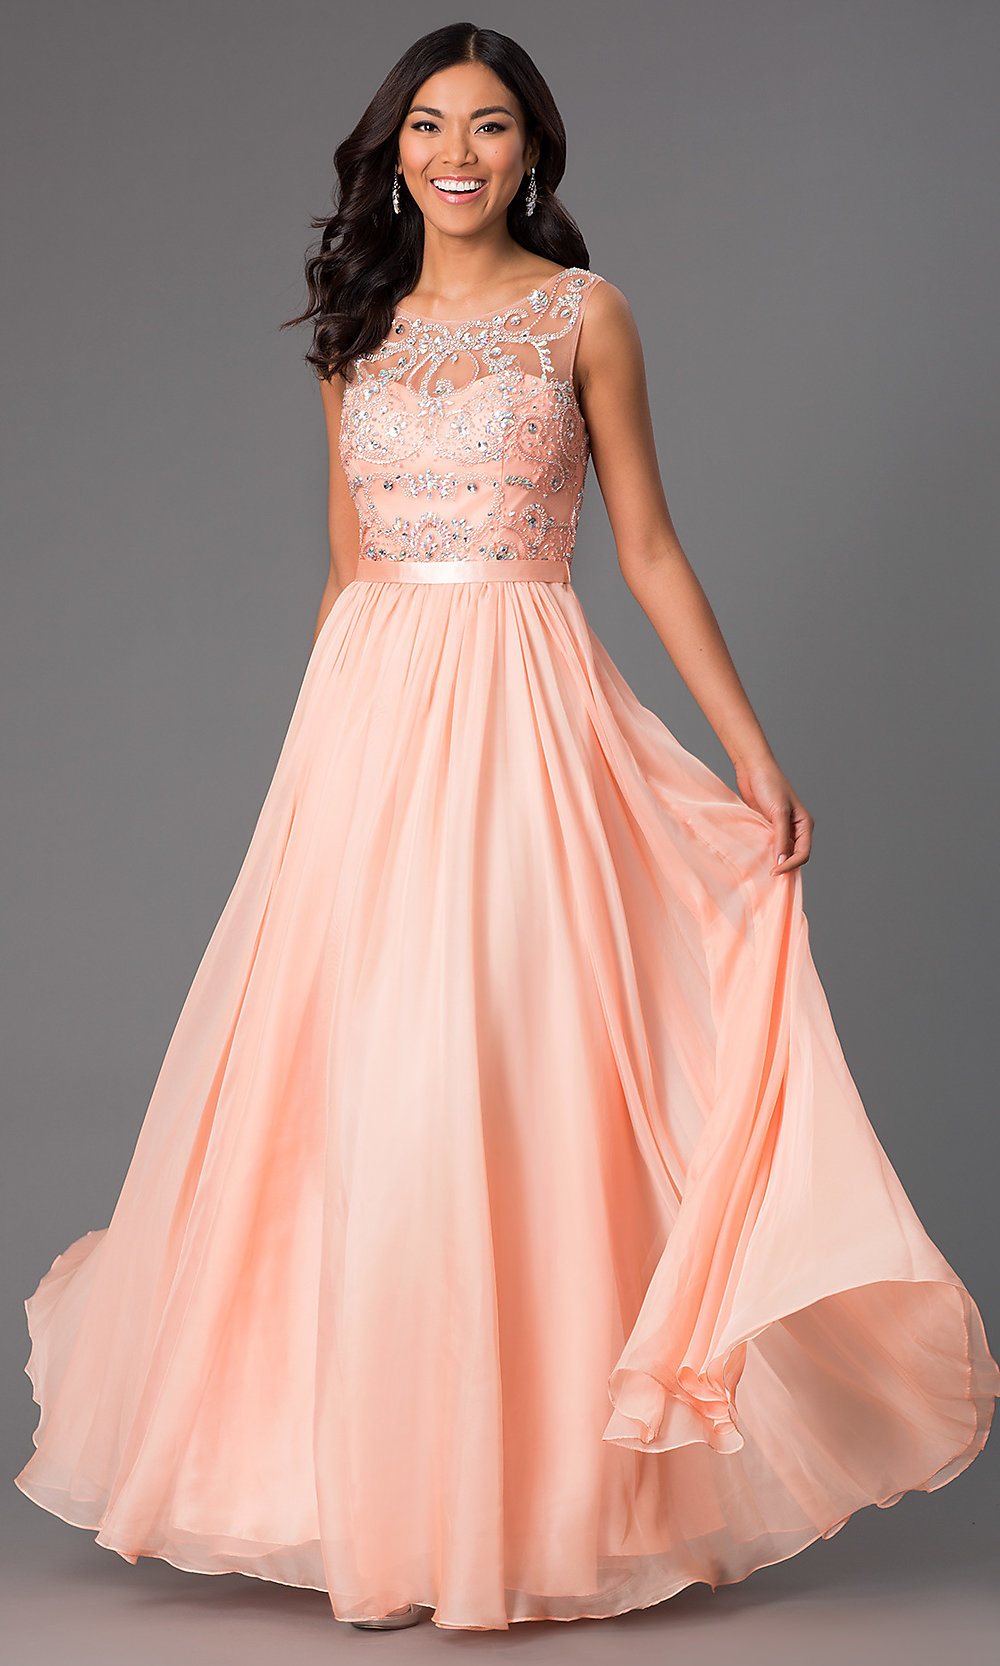 Beautiful dresses to wear to a wedding as a guest